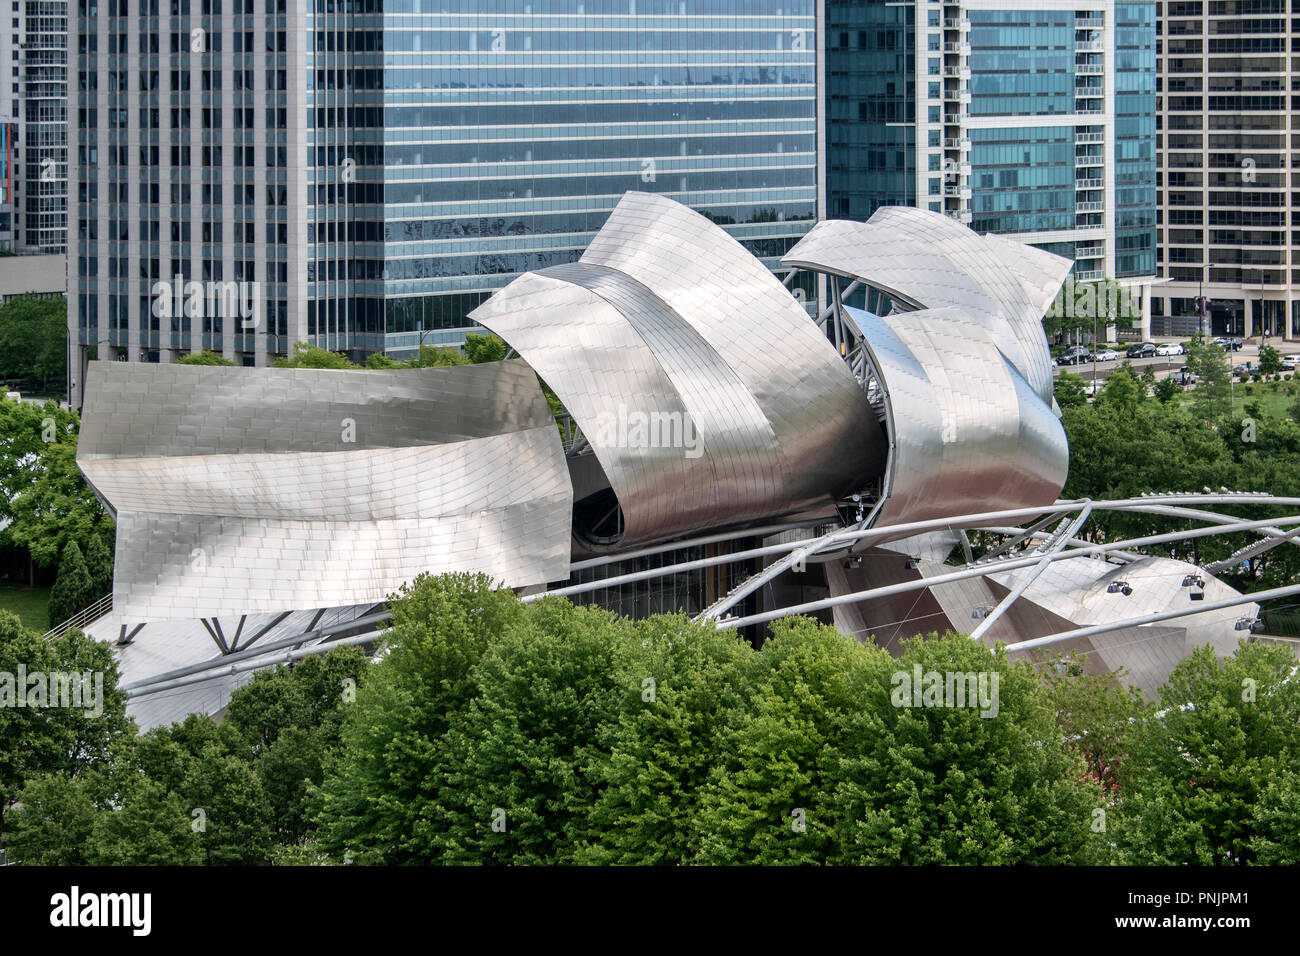 Jay Pritzker Pavilion by architect Frank O. Gehry in Millennium Park, Downtown Chicago, IL. - Stock Image